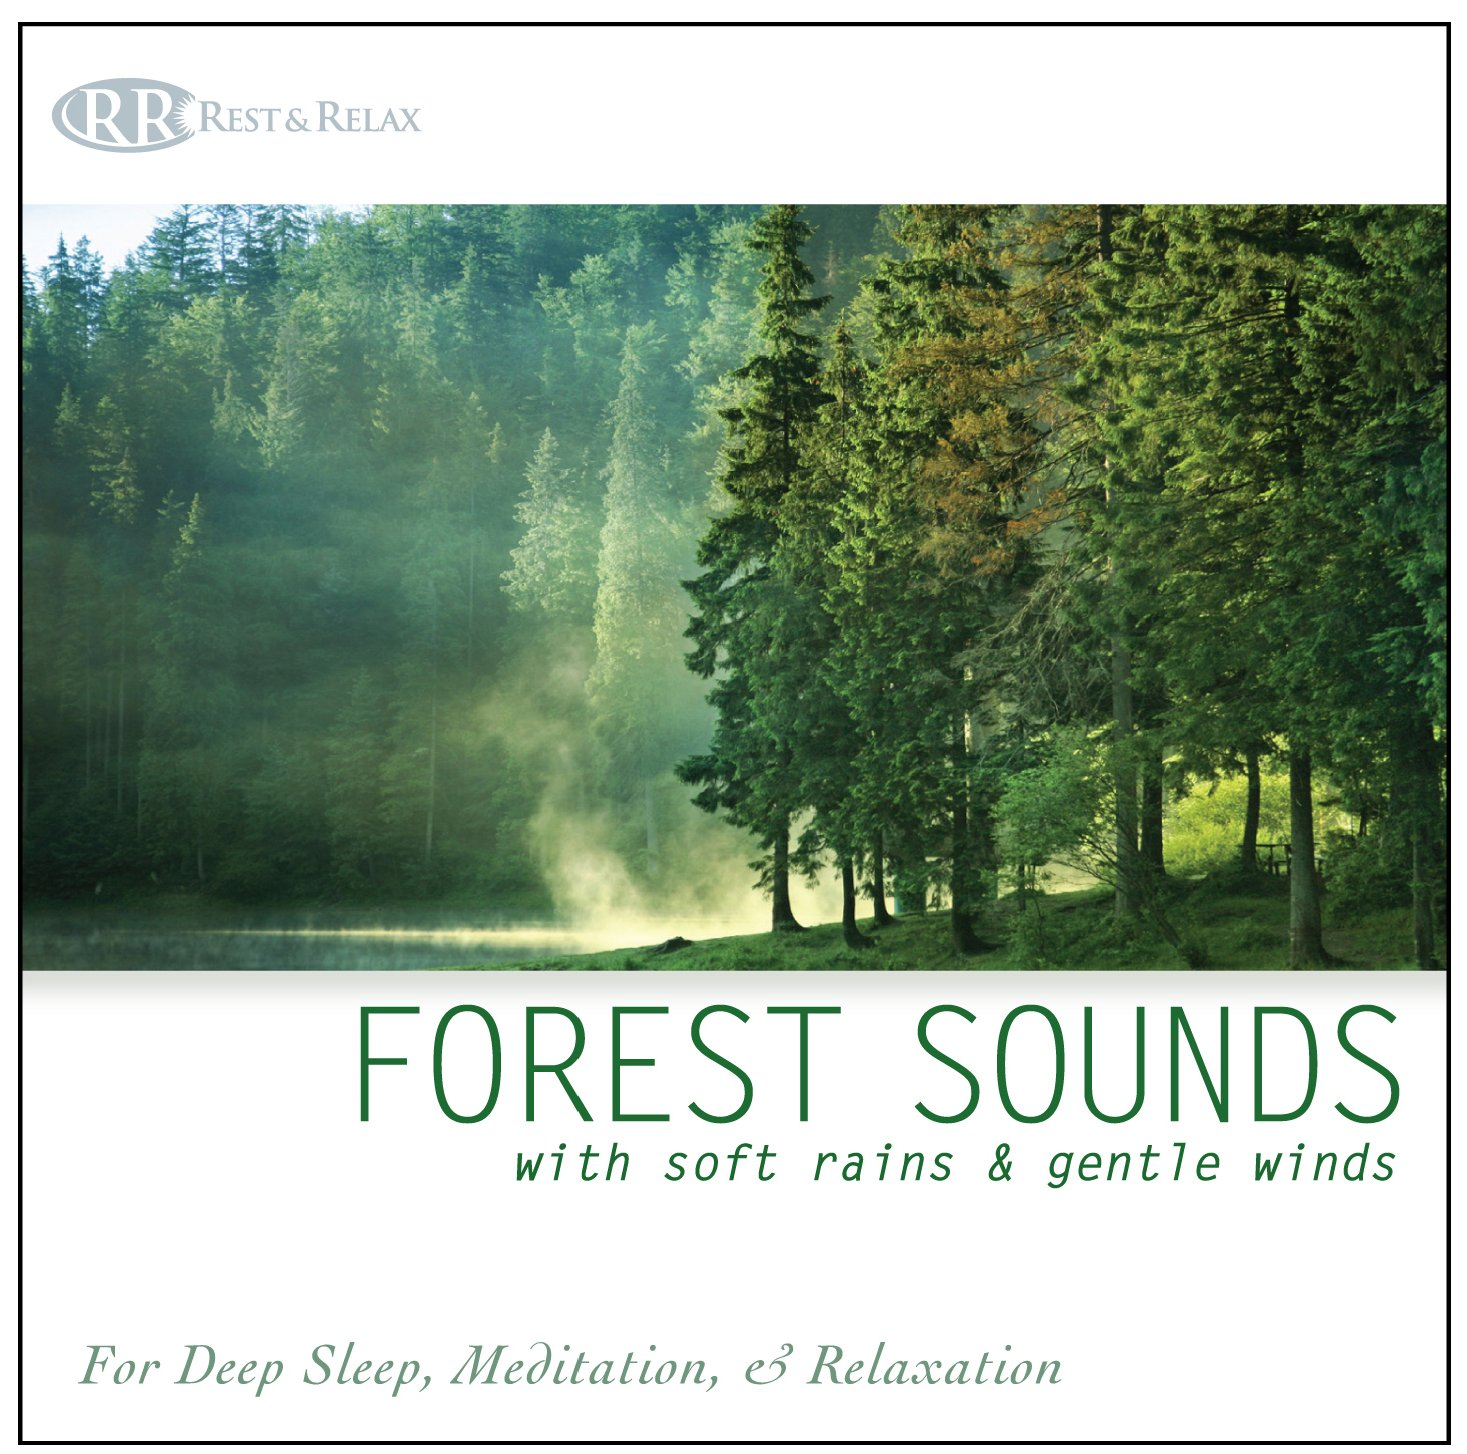 Forest Sounds: with Soft Rains & Gentle Winds (Nature Sounds, Deep Sleep Music, Meditation, Relaxation Sounds of Nature)